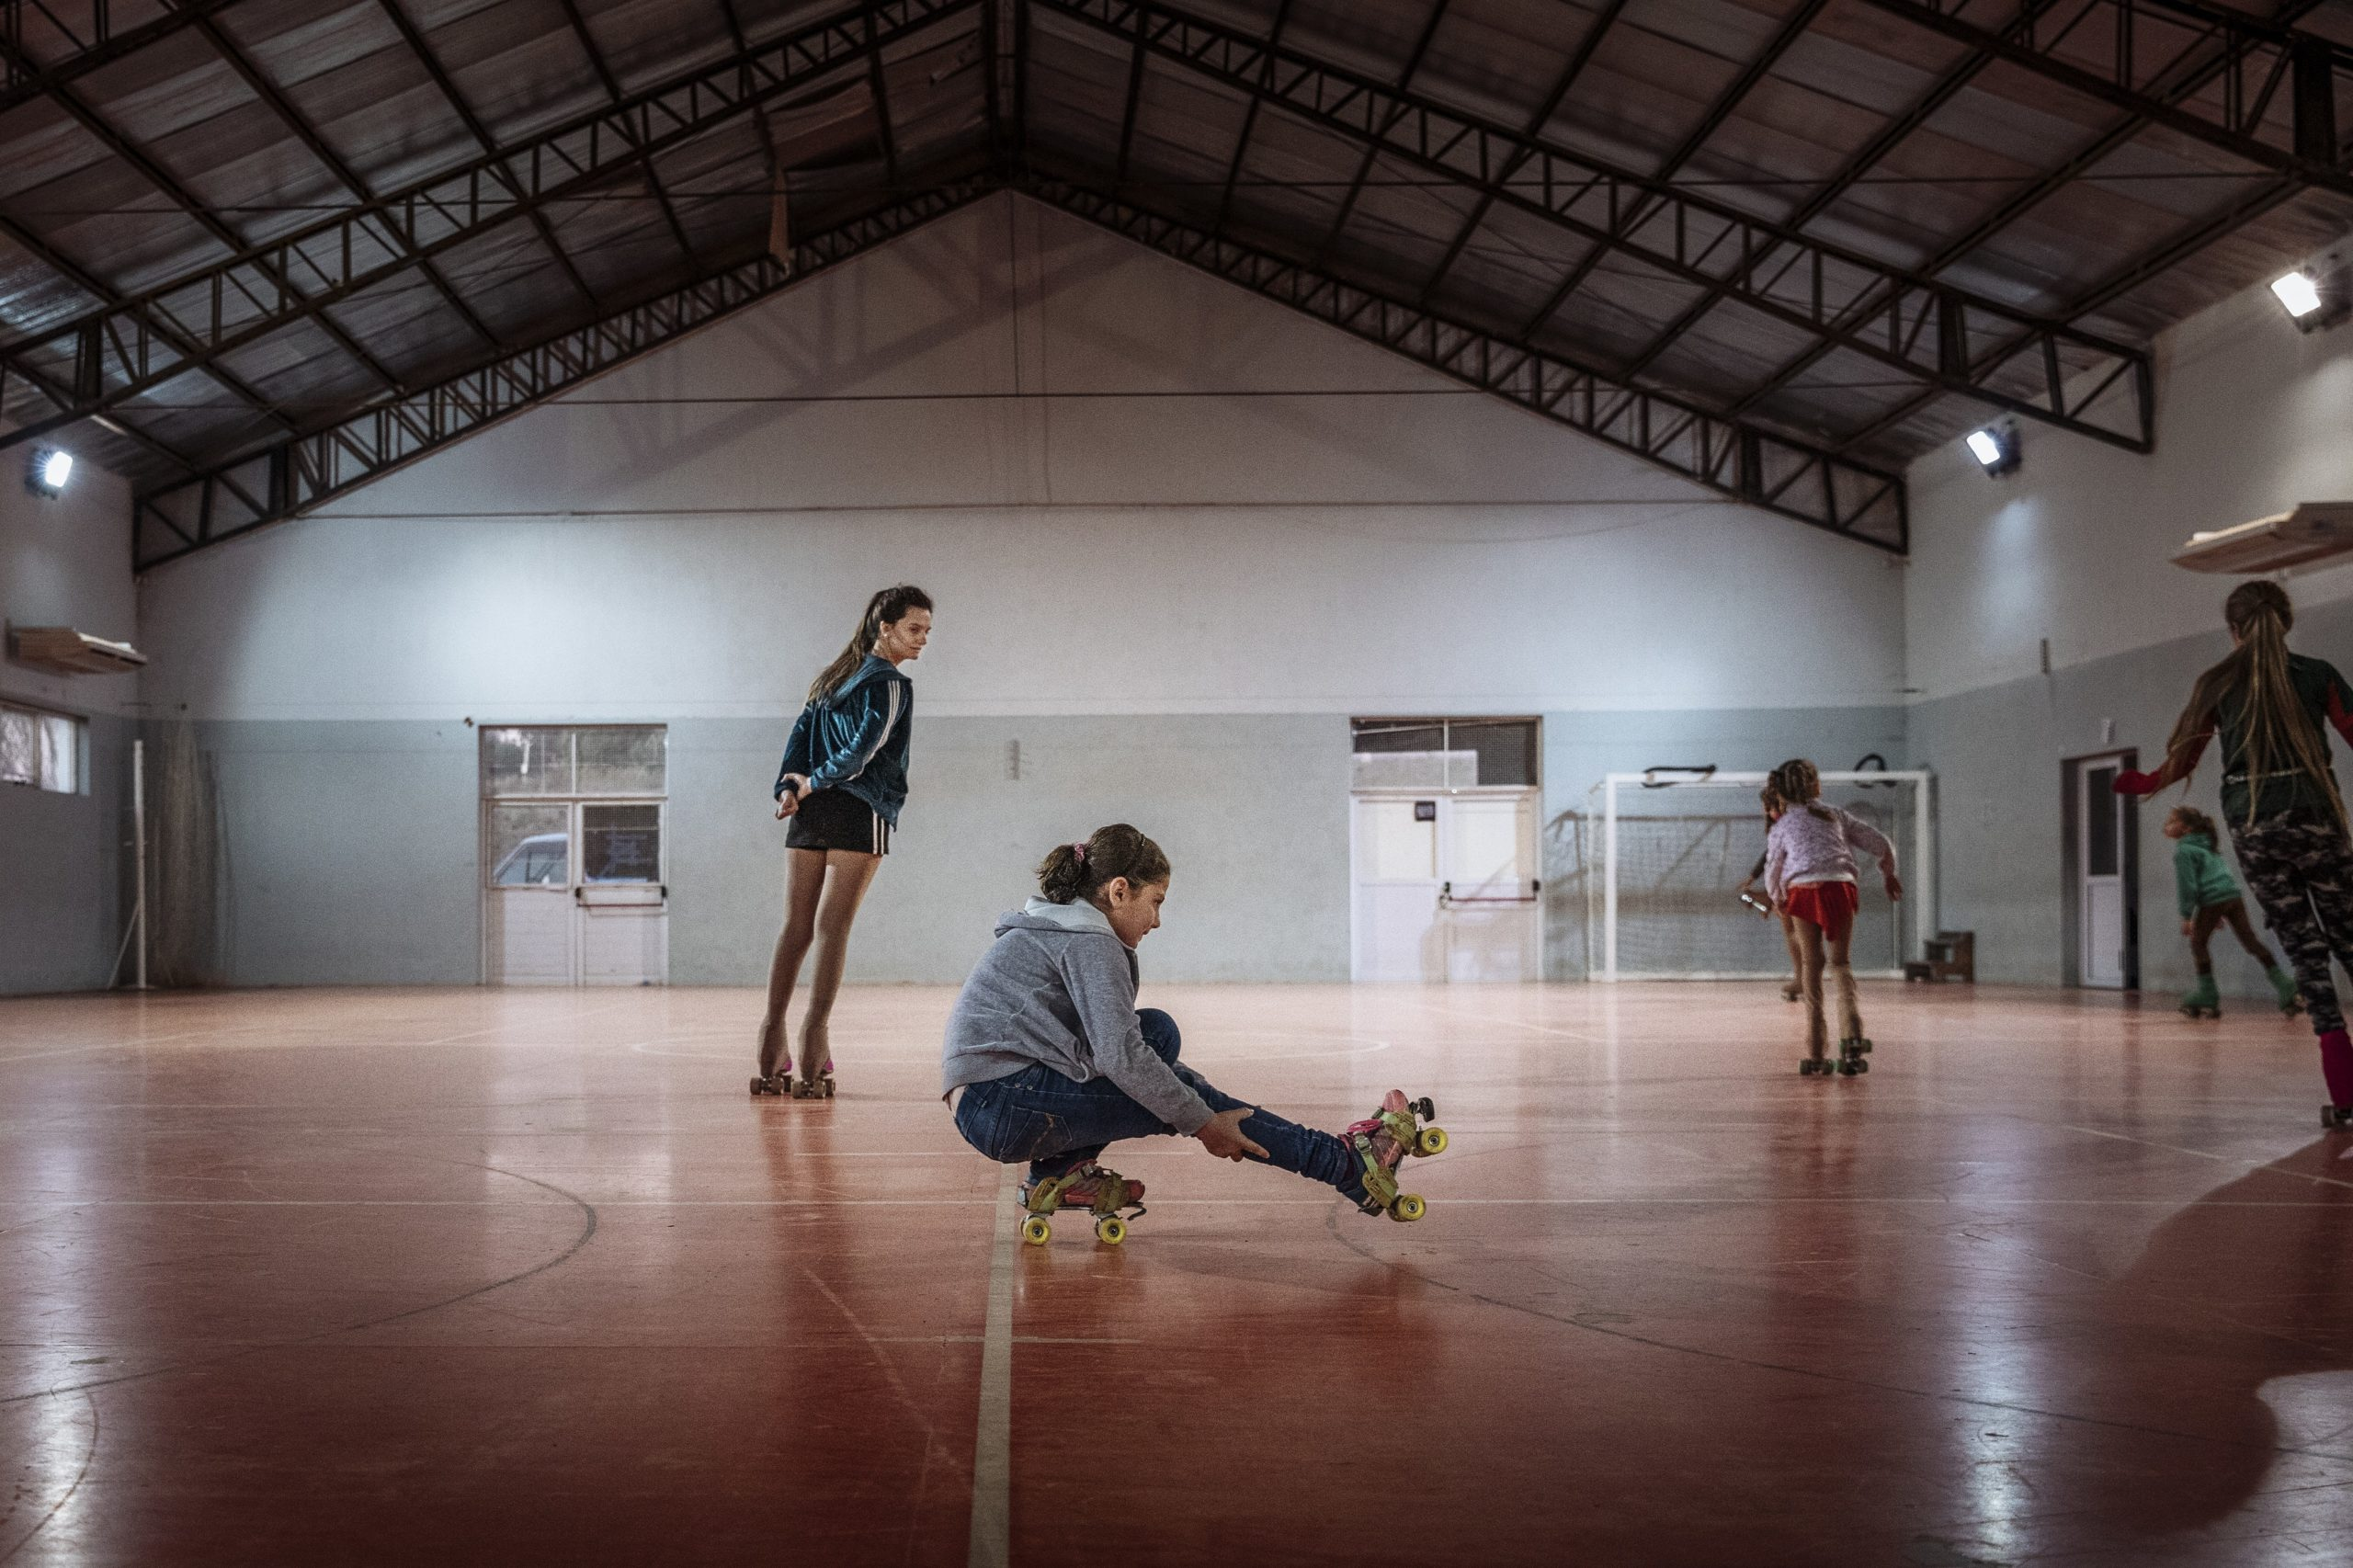 """Revell Alkhouly, an eight-year-old Syrian refugee, has taken up roller-skating since resettling to the small, rural town of Coronel Suárez in Argentina with her parents and two younger brothers. """"The children haven't faced any difficulties since the first day [arriving to Argentina]. To them, this has felt like an adventure or road trip. A child doesn't understand [the whole picture] they see a nice garden, school, playground, as if it were an excursion"""" explain Revell's father Wadeh. Revell and her family is among the hundreds of Syria refugees that have been resettled to Argentina through the help of IOM and partners. ©Muse Mohammed"""